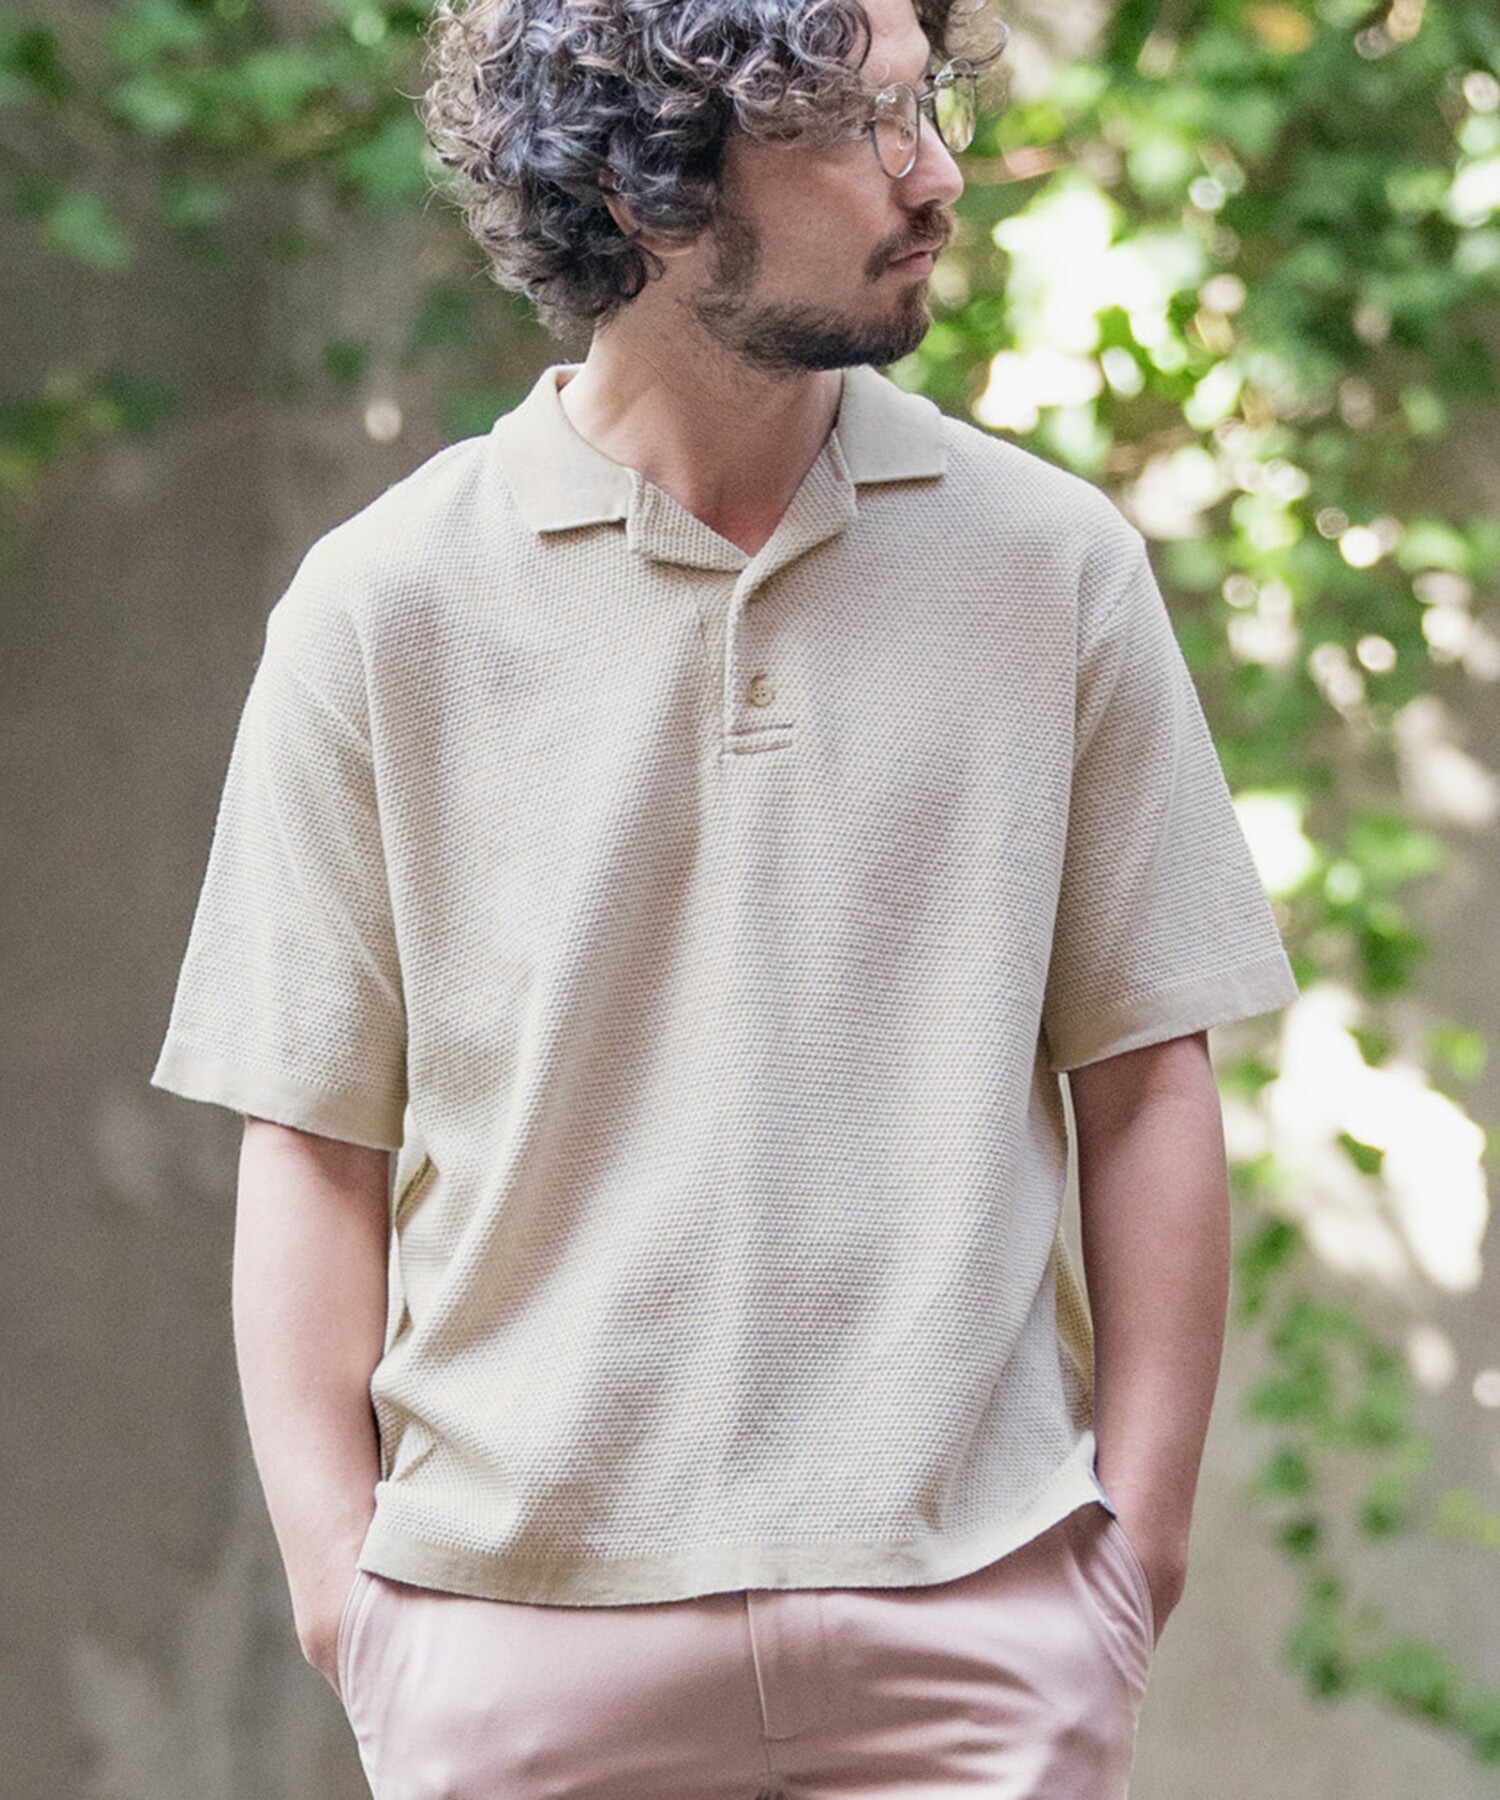 【ANGENEHM(アンゲネーム)】Cotton Linen Open Collar Knit Polo Shirts (MADE IN JAPAN) ポロシャツ